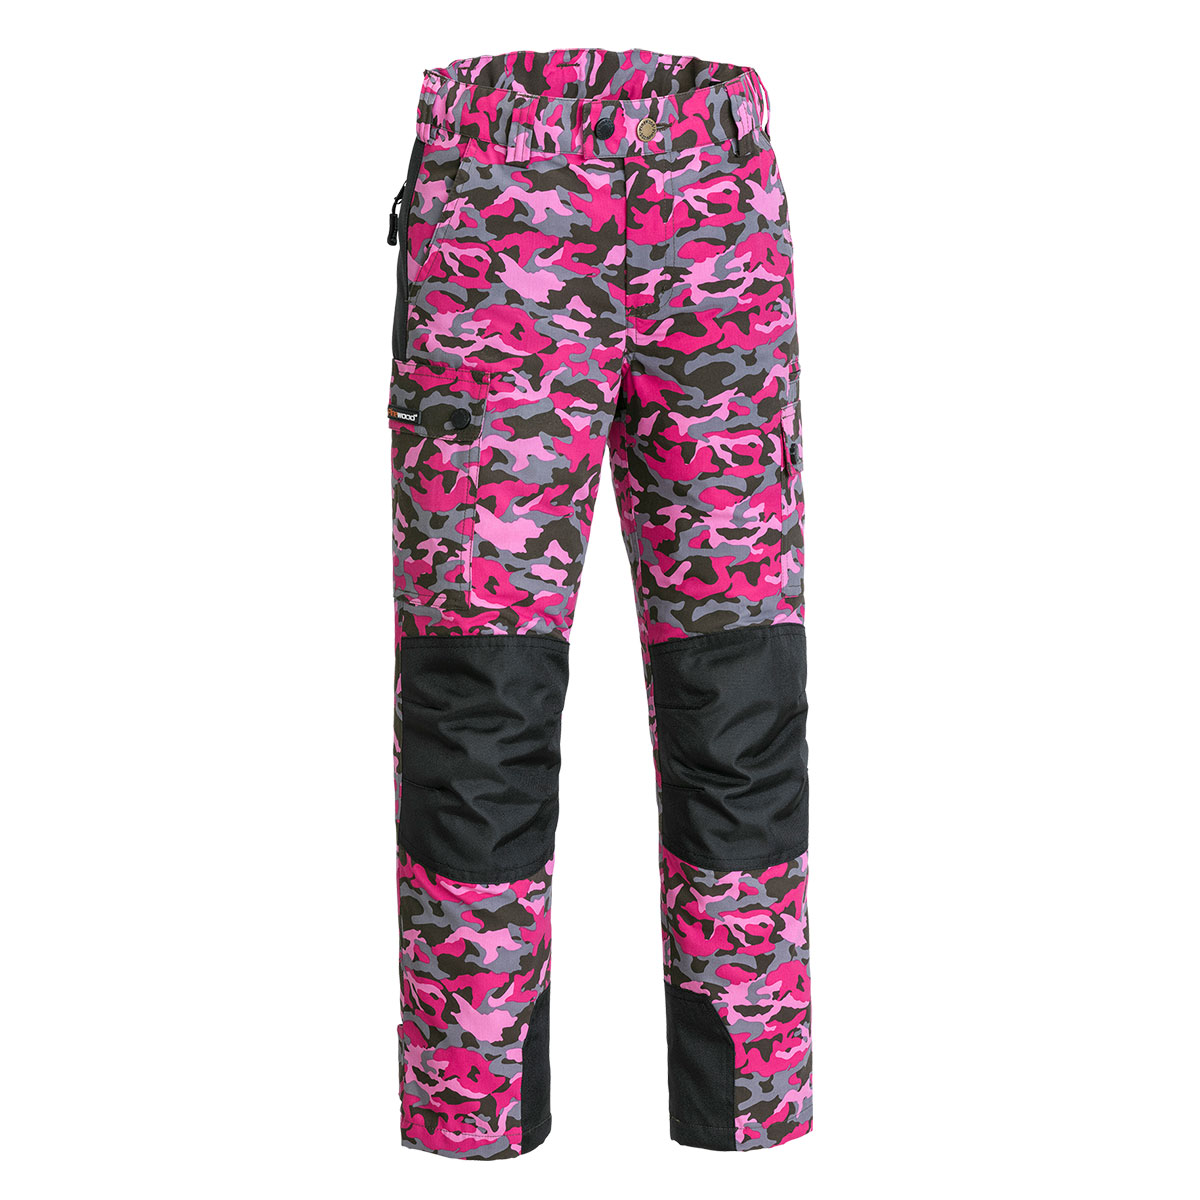 Pinewood Kinder Hose Lappland Camou Hot Pink Jungle/Schwarz im Pareyshop